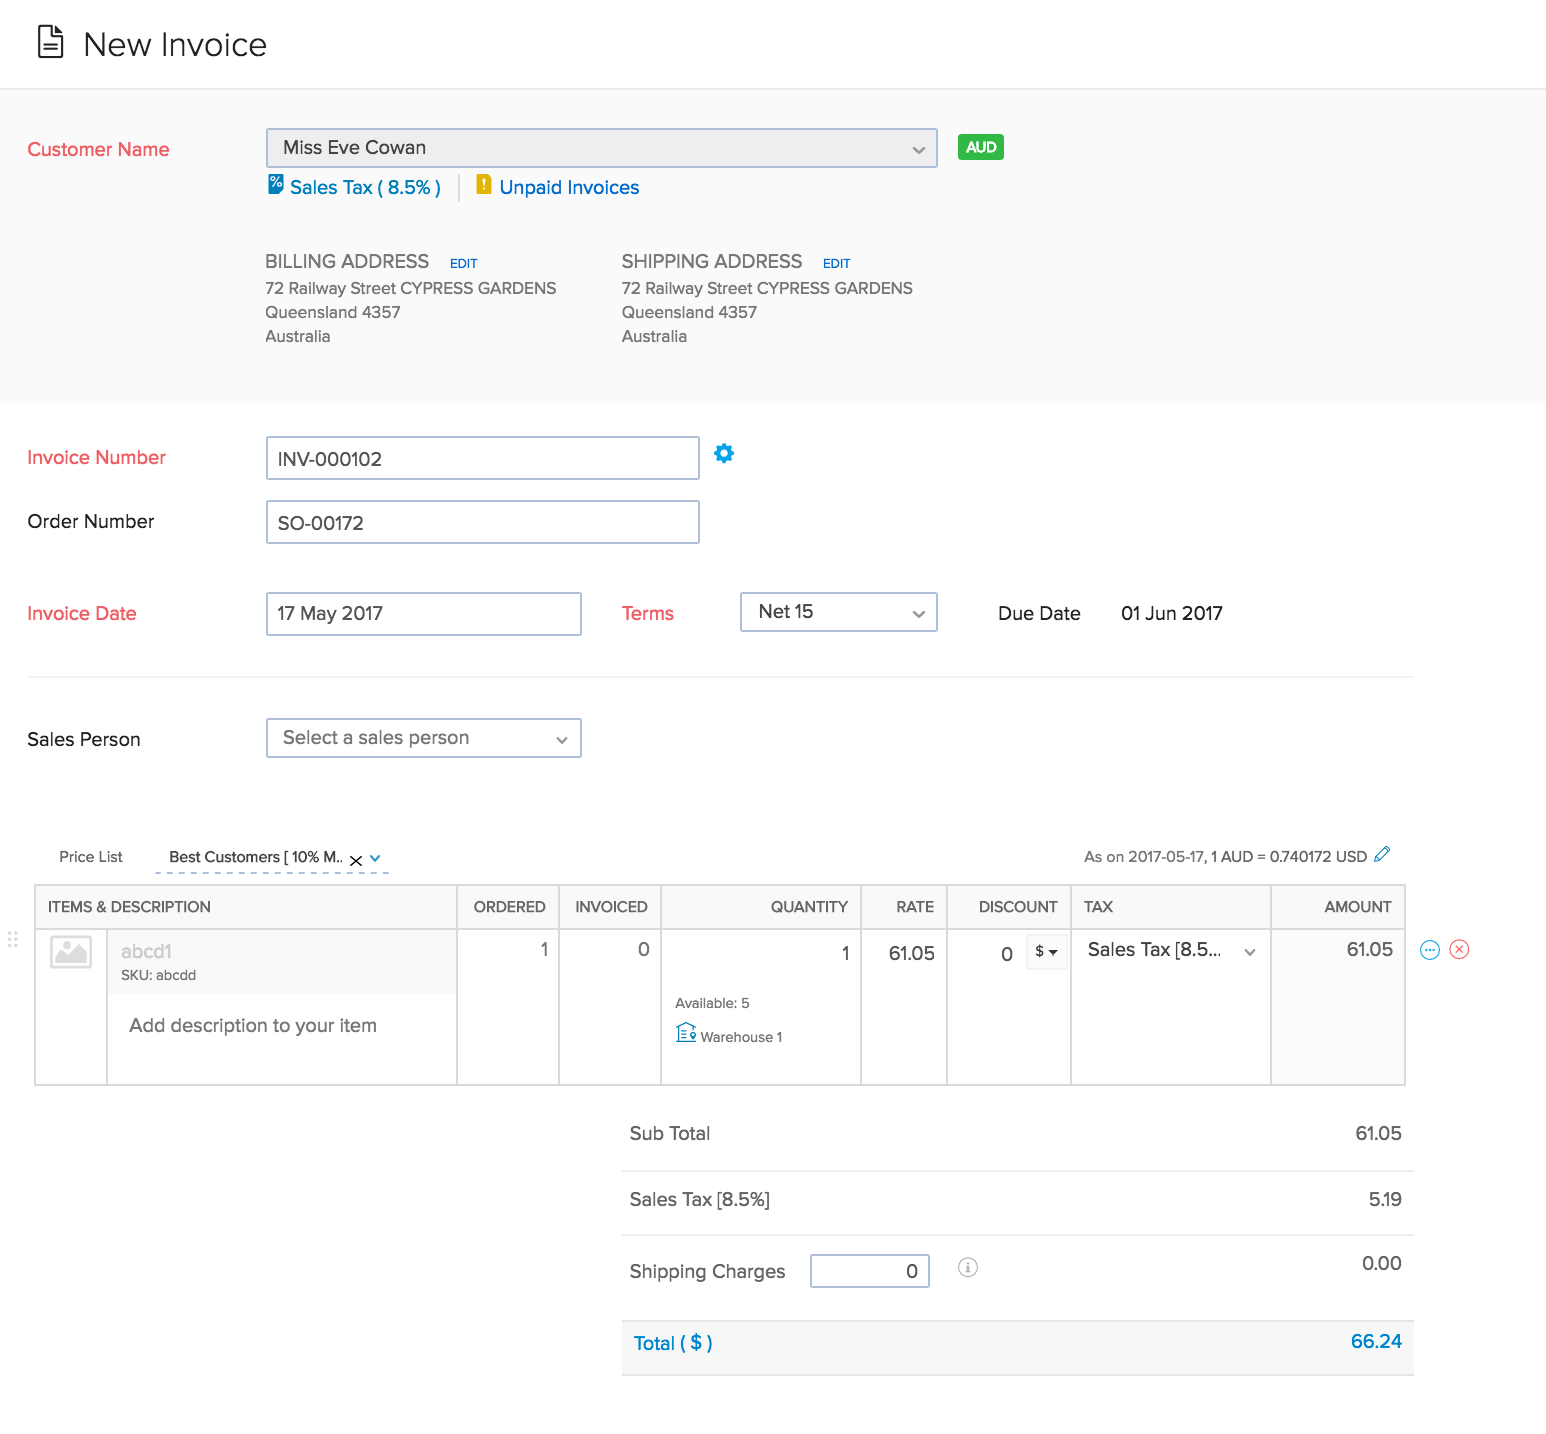 Image of the new invoice page - top half